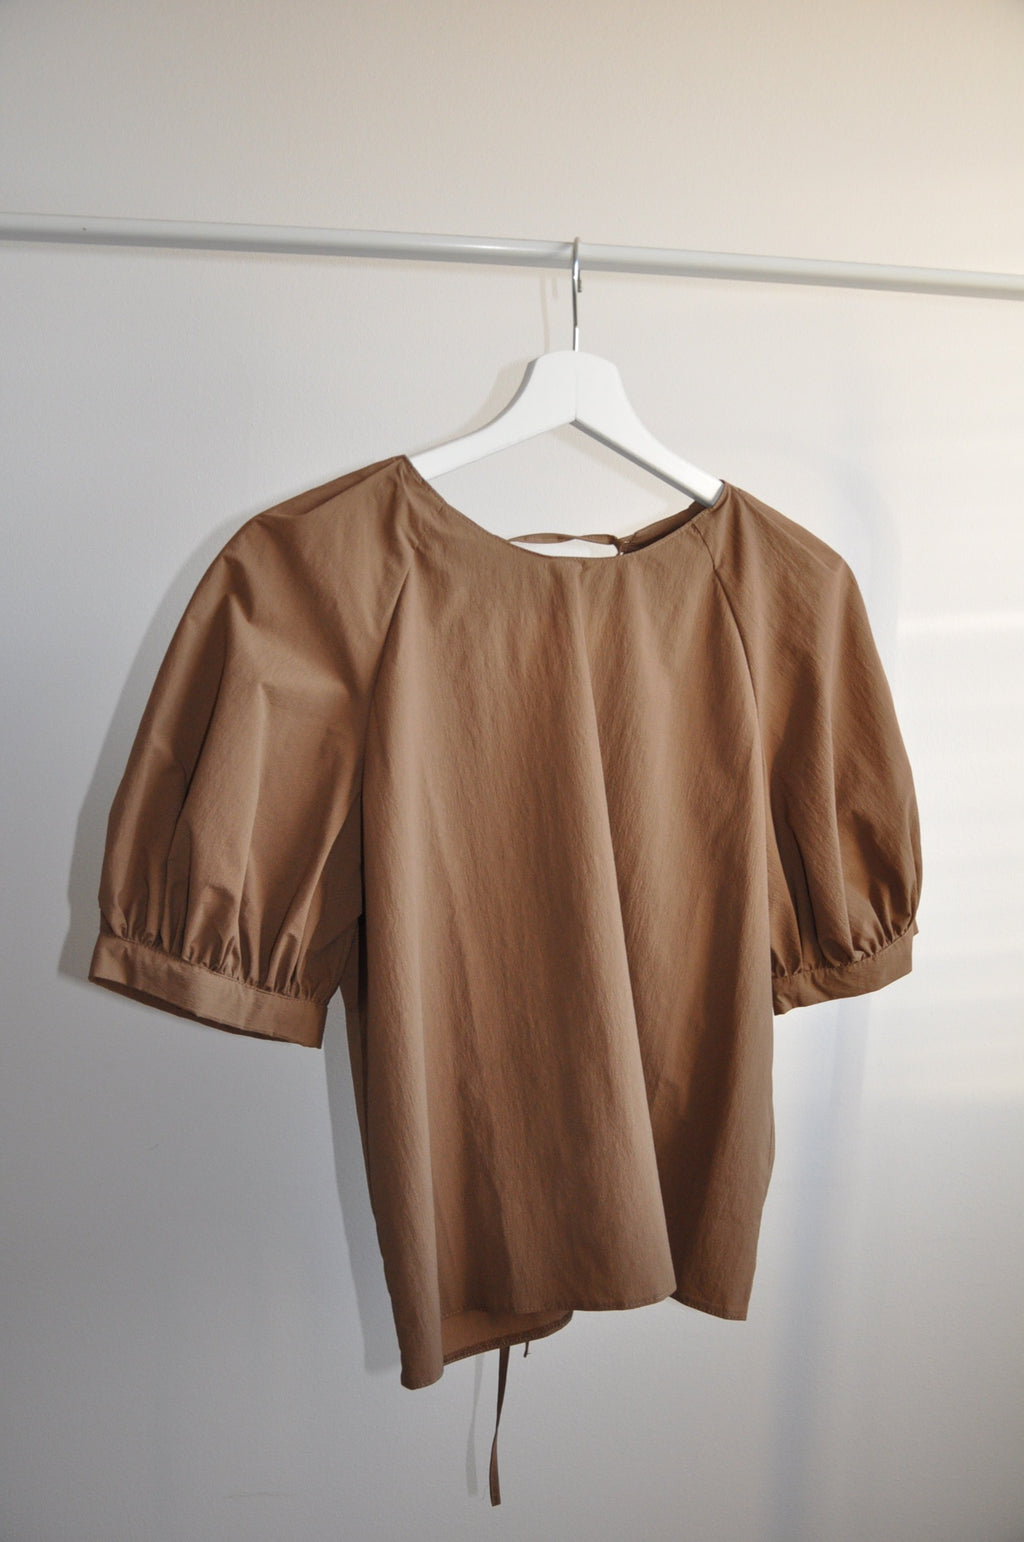 Ruffle blouse chocolate in 3 sizes XXS-L - Upcycled by Nimfa